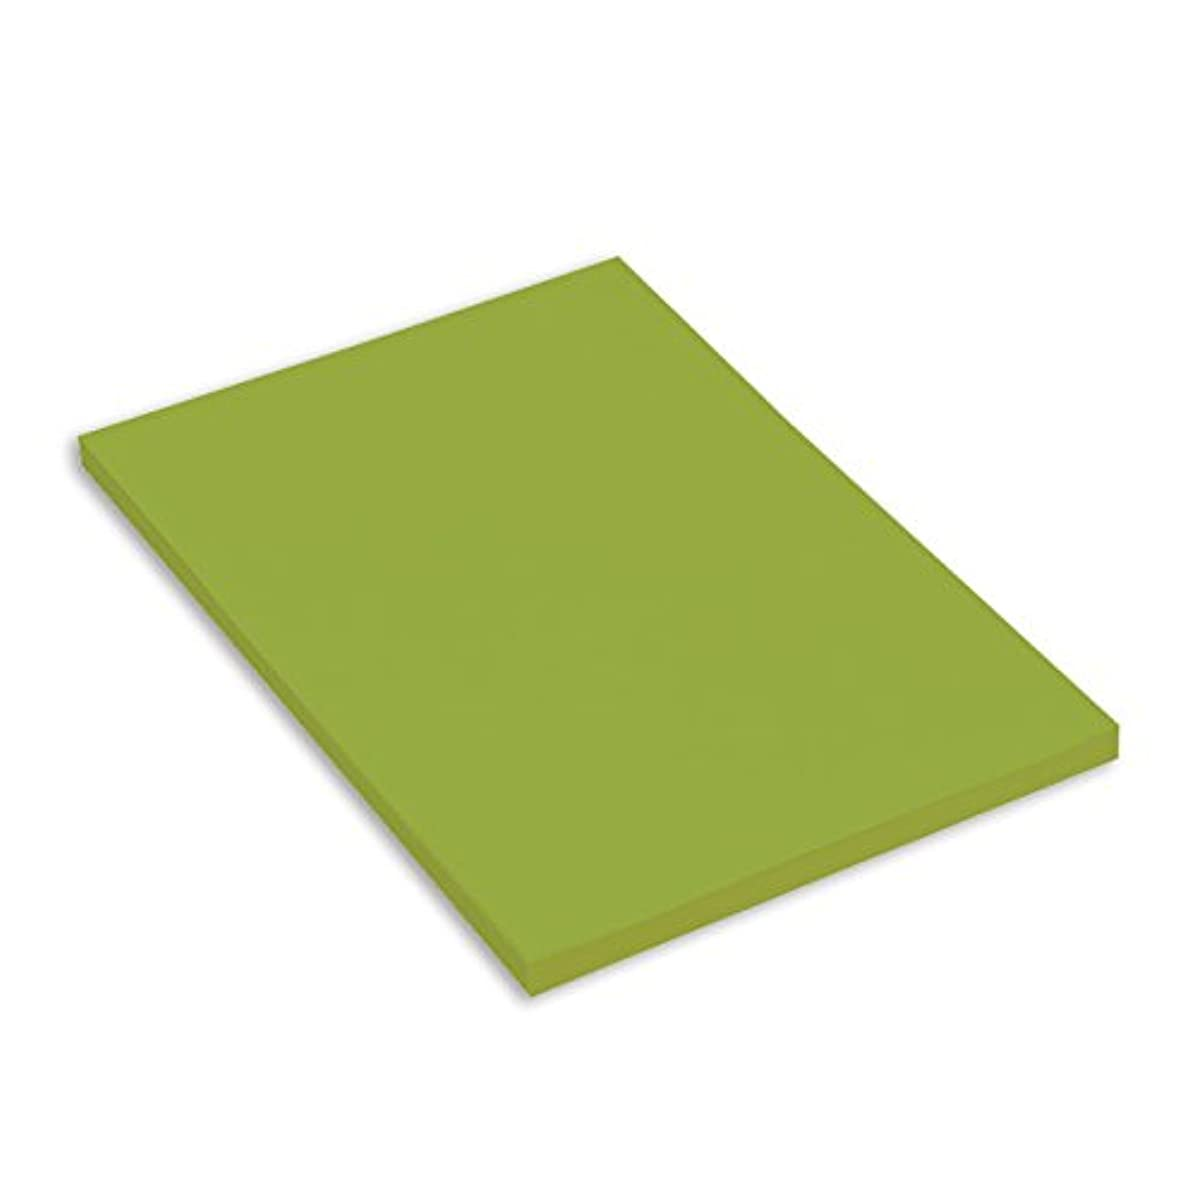 Canson Mi-Teintes A4 160 GSM Honeycombed Grain Coloured Drawing Paper - Apple Green (Pack of 50 Sheets)